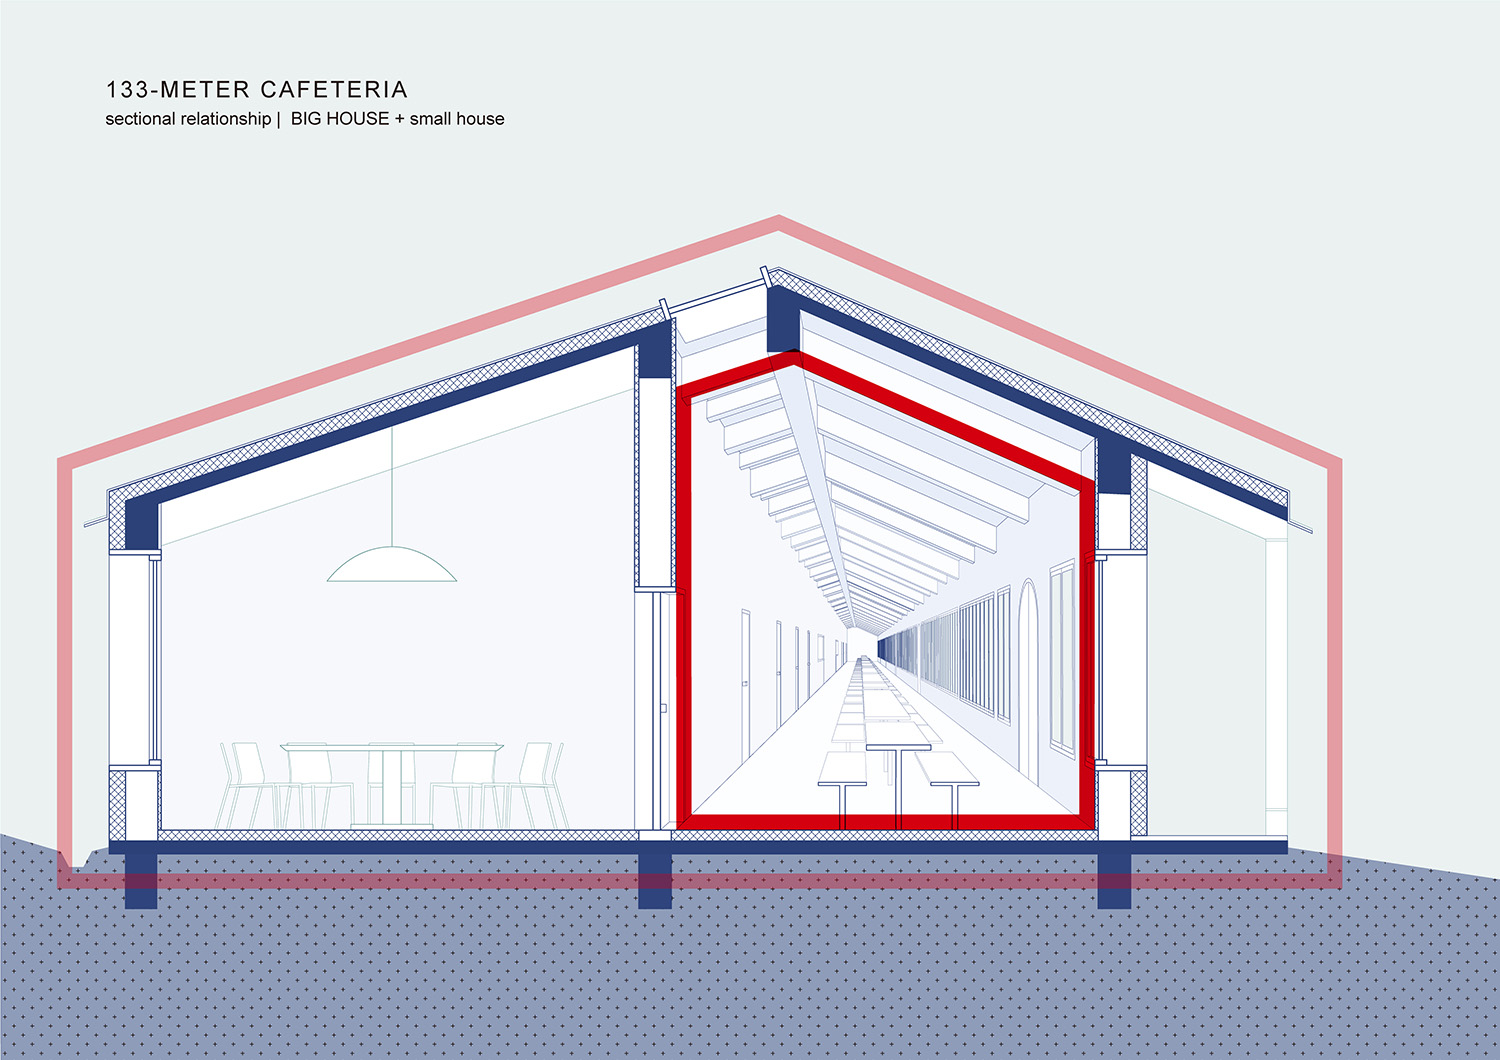 06_EKATO-METER CAFETERIA_Big House and Small House Diagram STUDIO QI}